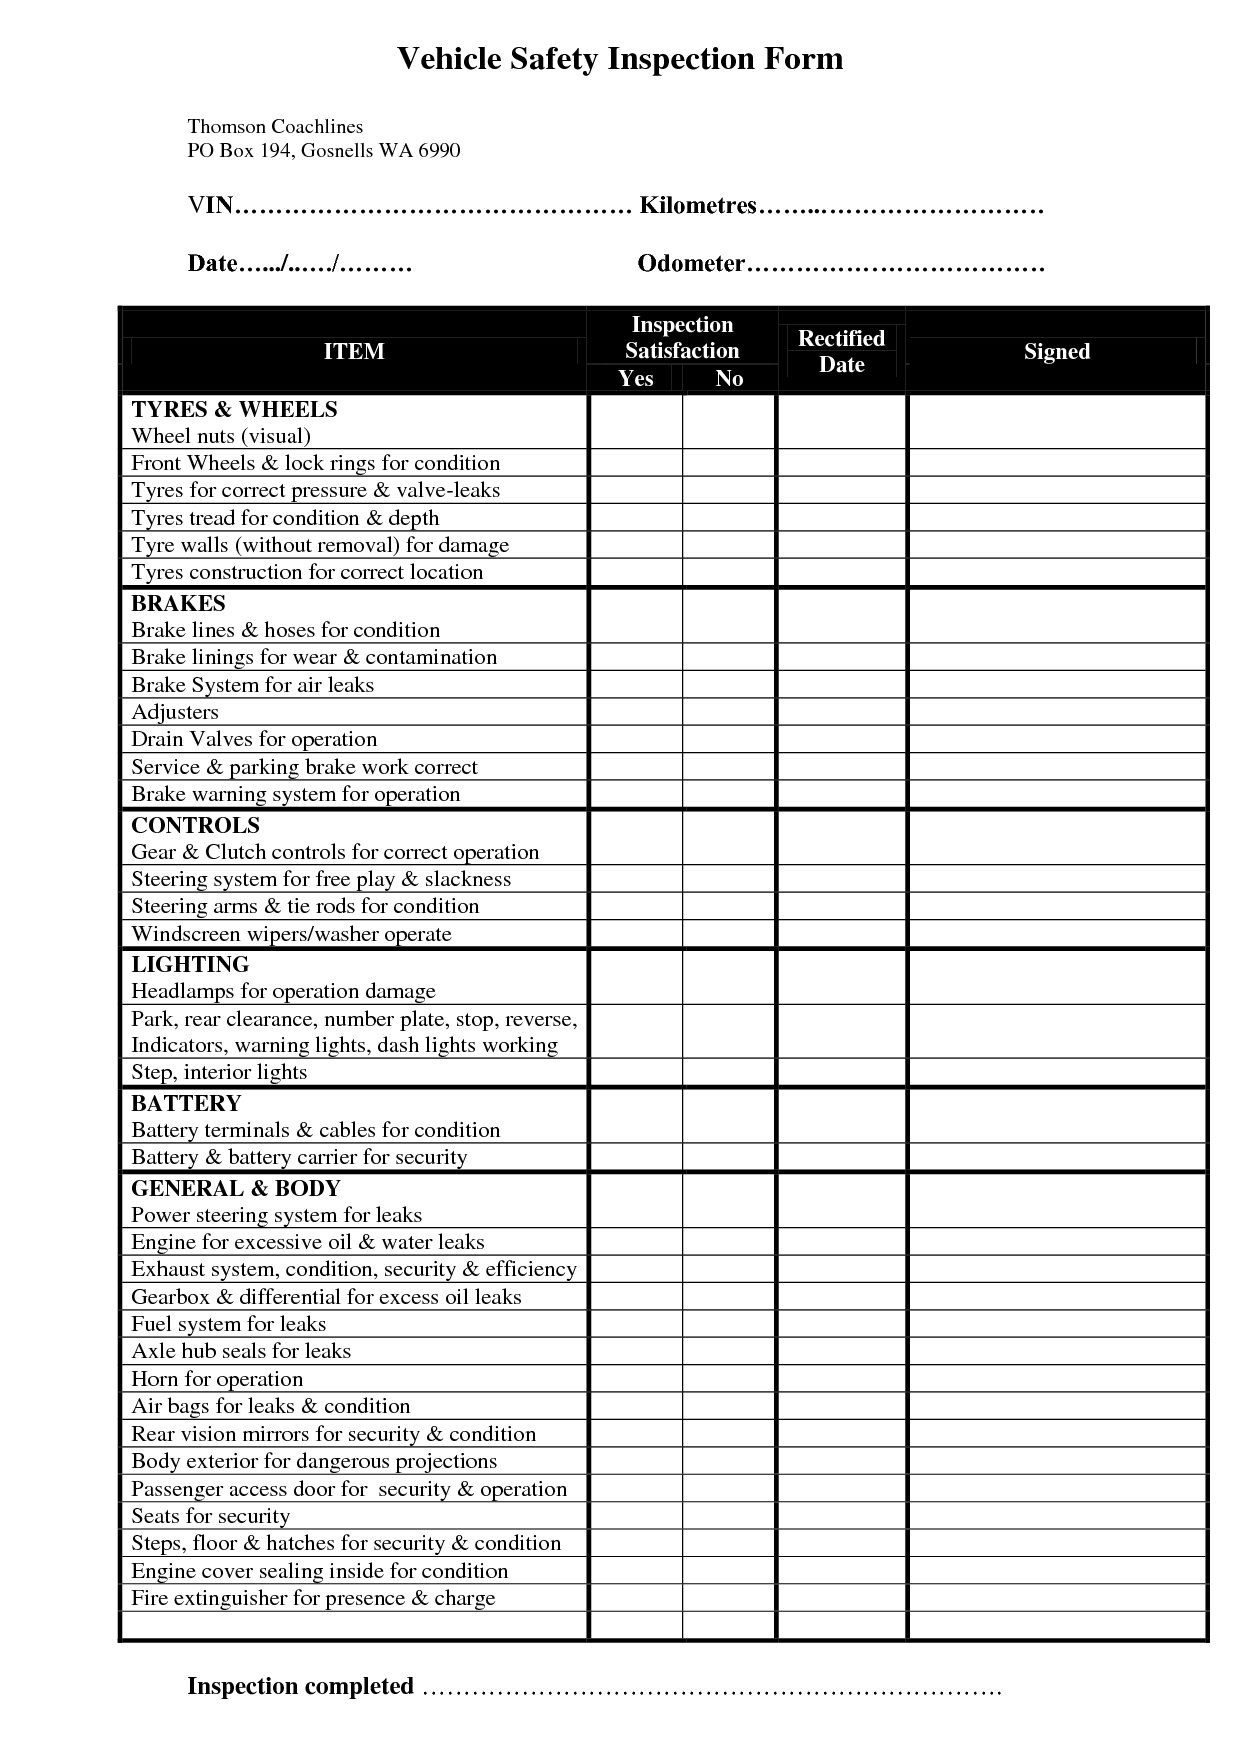 Vehicle Safety Inspection Form Safety Inspection Forms